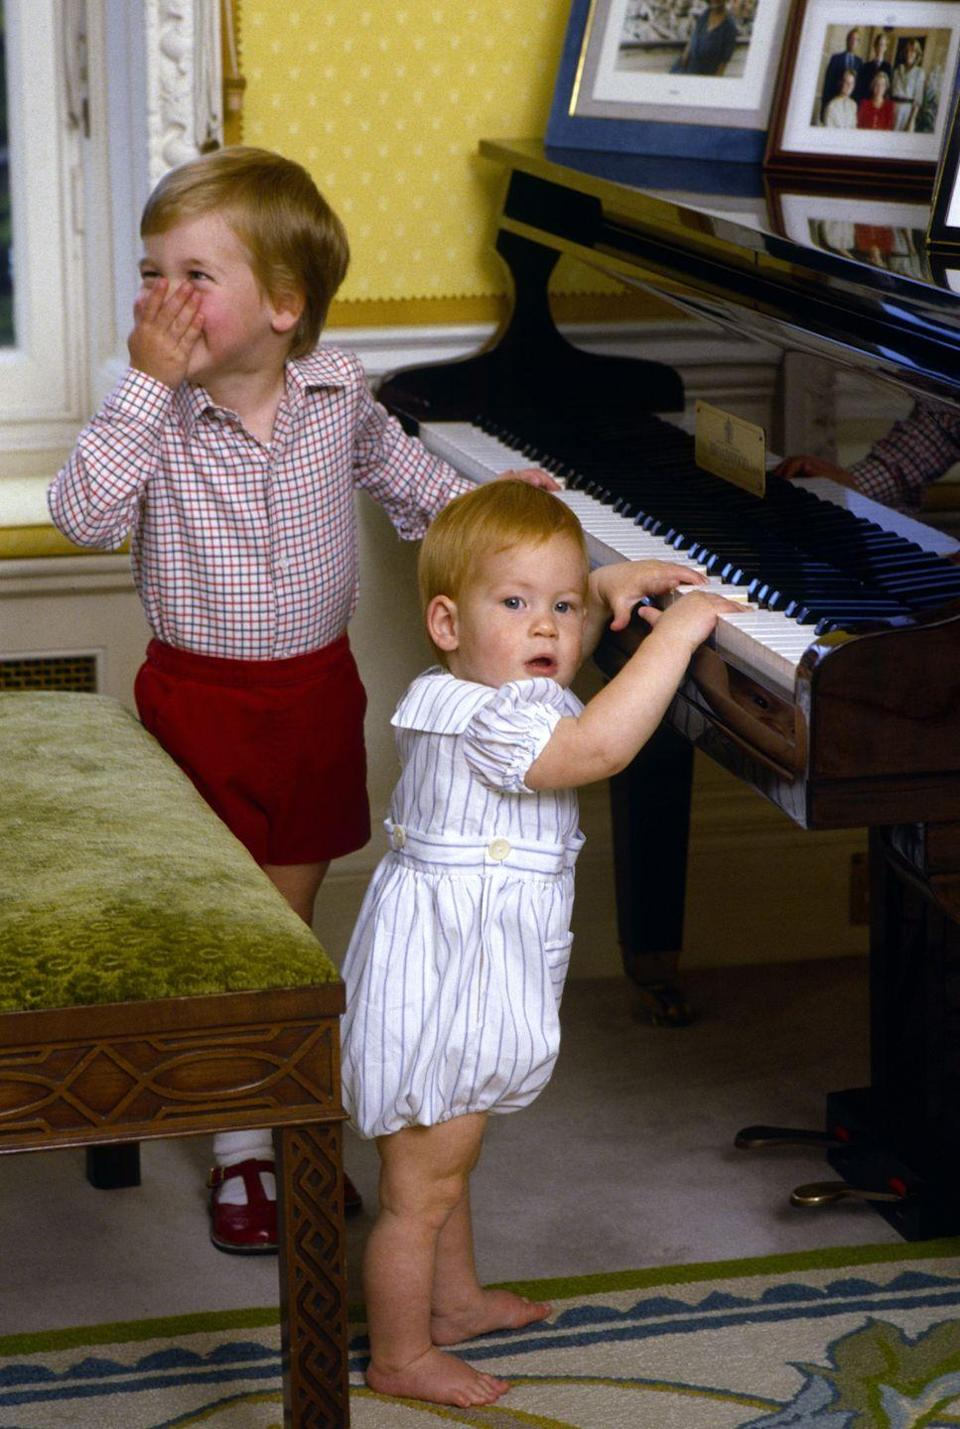 """<p>Prince William giggles while his brother Prince Harry fiddles with some keys on the piano at their home in Kensington Palace. The princes, who have lived in separate apartments within the palace over the years, have maintained a close relationship. Shortly after Harry announced his engagement in November 2017, <a href=""""https://twitter.com/KensingtonRoyal/status/935908818118217728"""" rel=""""nofollow noopener"""" target=""""_blank"""" data-ylk=""""slk:William told reporters"""" class=""""link rapid-noclick-resp"""">William told reporters</a>, """"For me personally, I hope it means he stays out of my fridge and stop him scrounging over my food like he's done over the last few years. I'm pretty excited.""""</p>"""